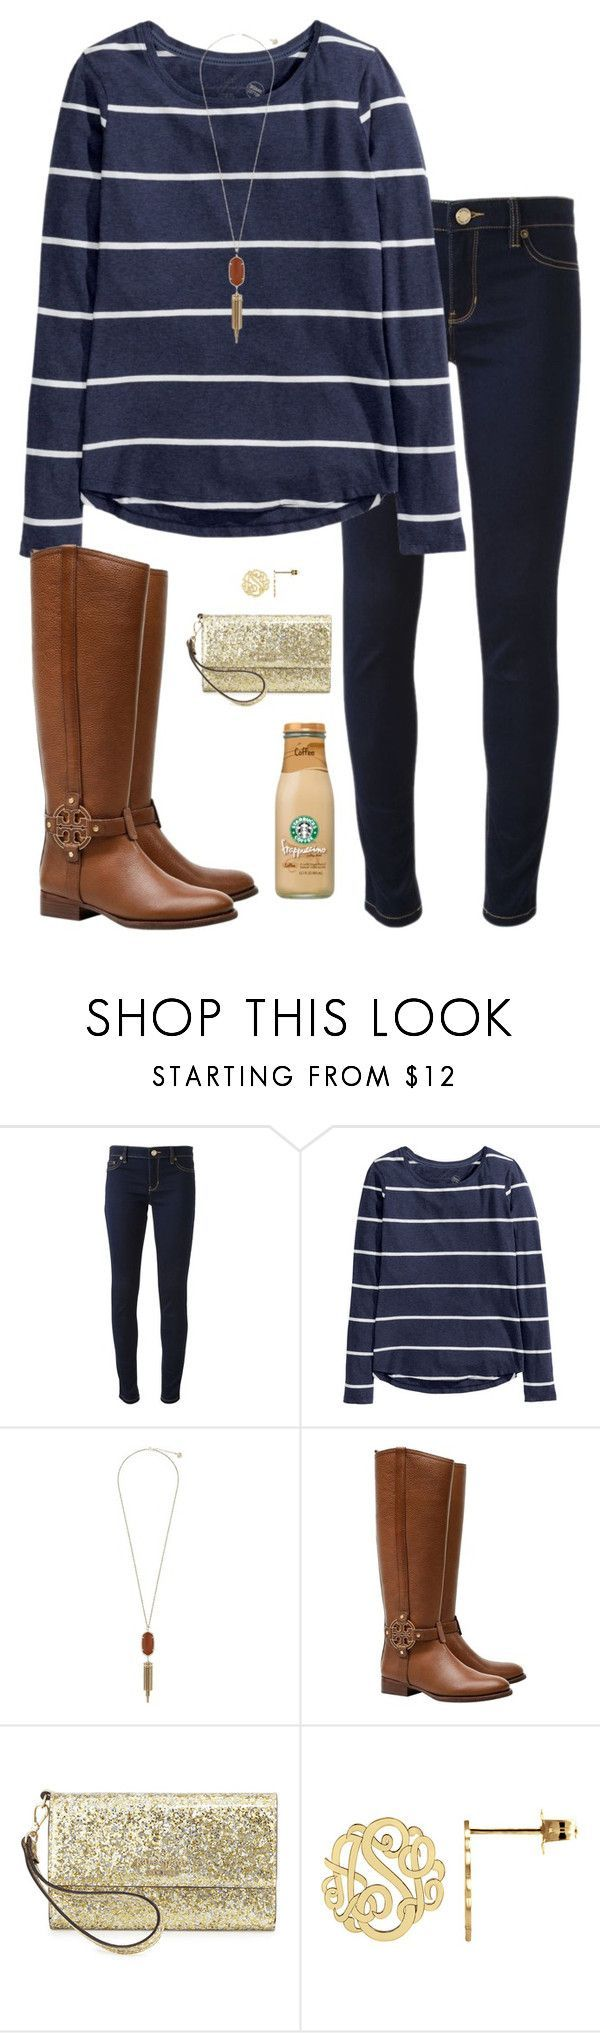 """Adeste Fideles"" by sc-prep-girl ❤ liked on Polyvore featuring Michael Kors, H&M, Kendra Scott, Tory Burch and Kate Spade"